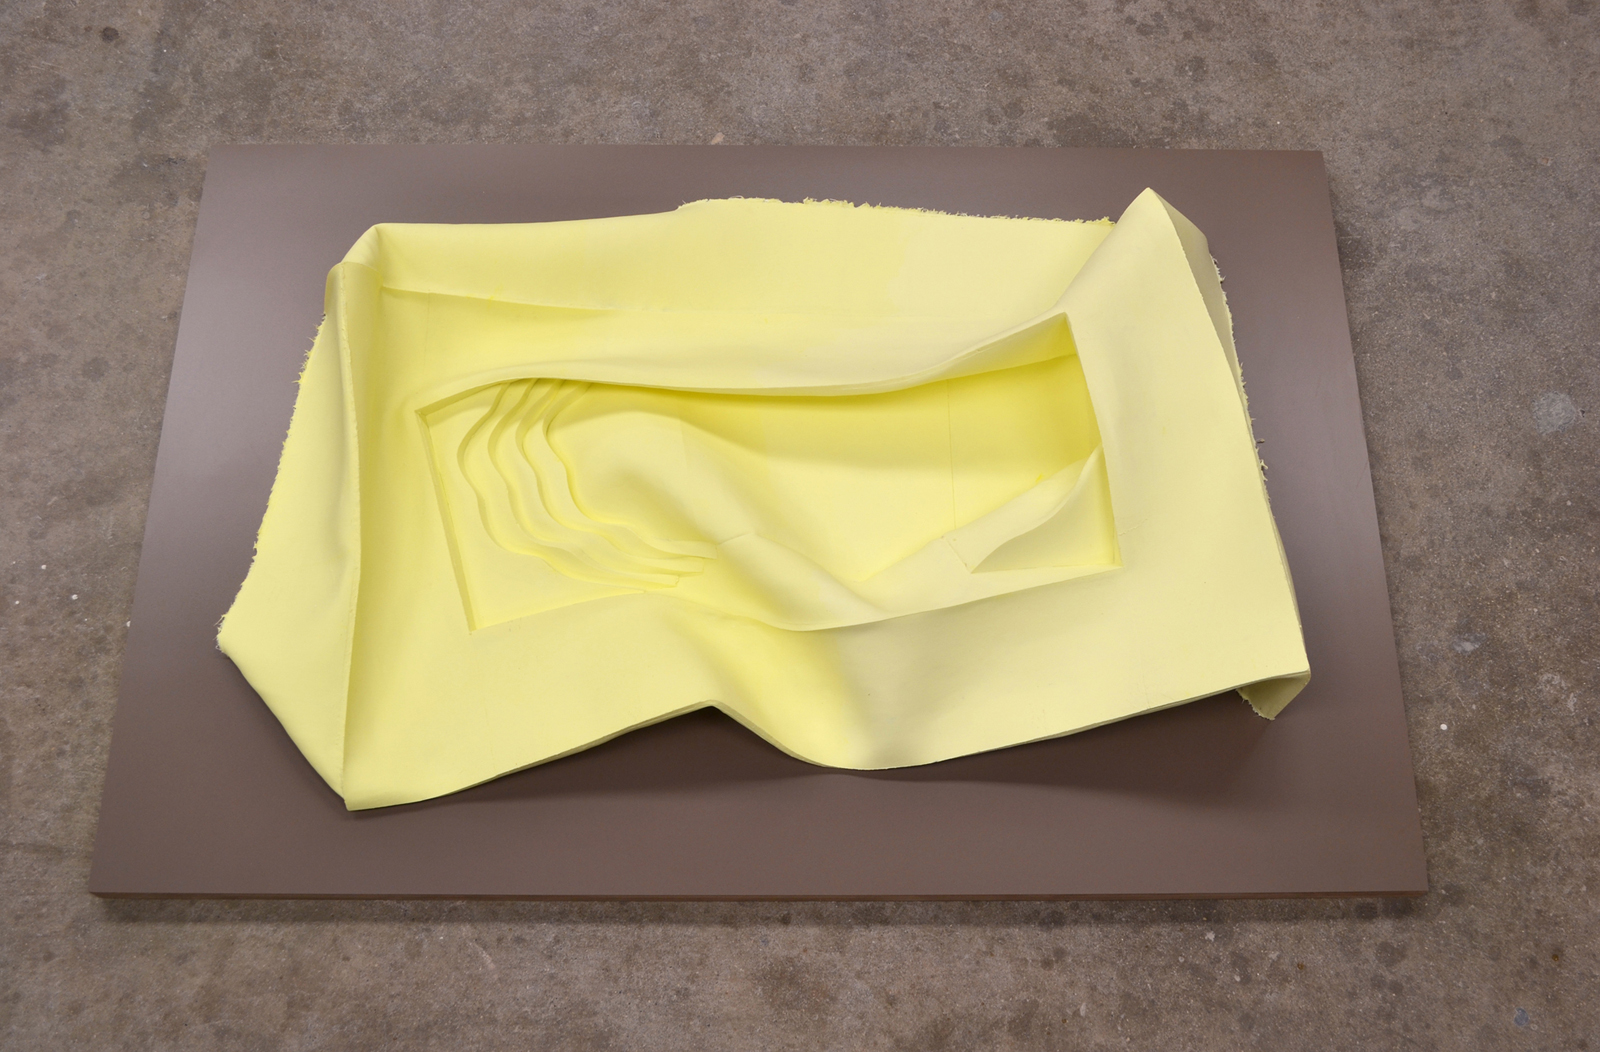 John Dickinson, Yellow Pool, 2015, silicone, laminate, 30 x 40 x 5 in. Courtesy of the artist.